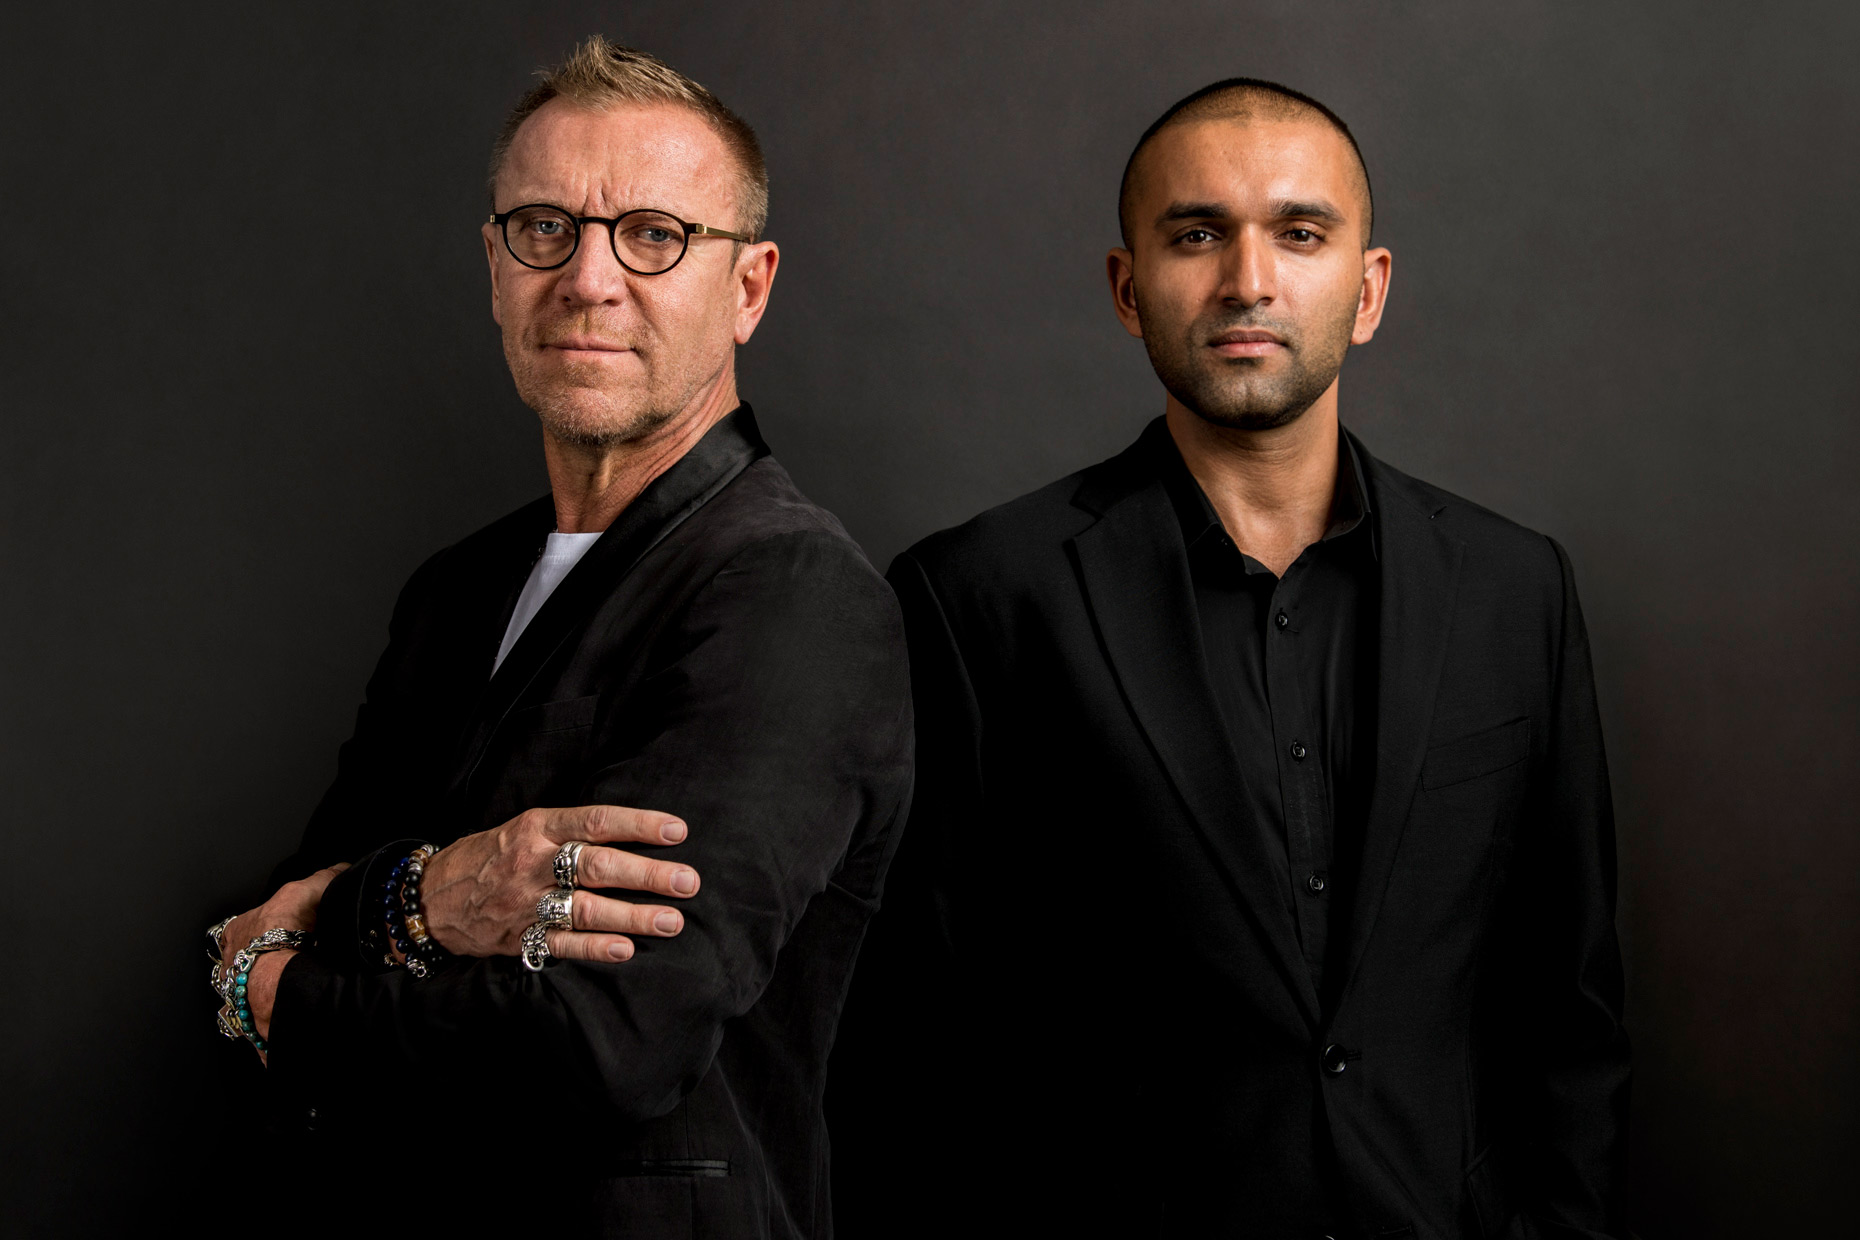 Renny Harlin DJ Parmar Portrait Extraordinary Productions Stefen Chow